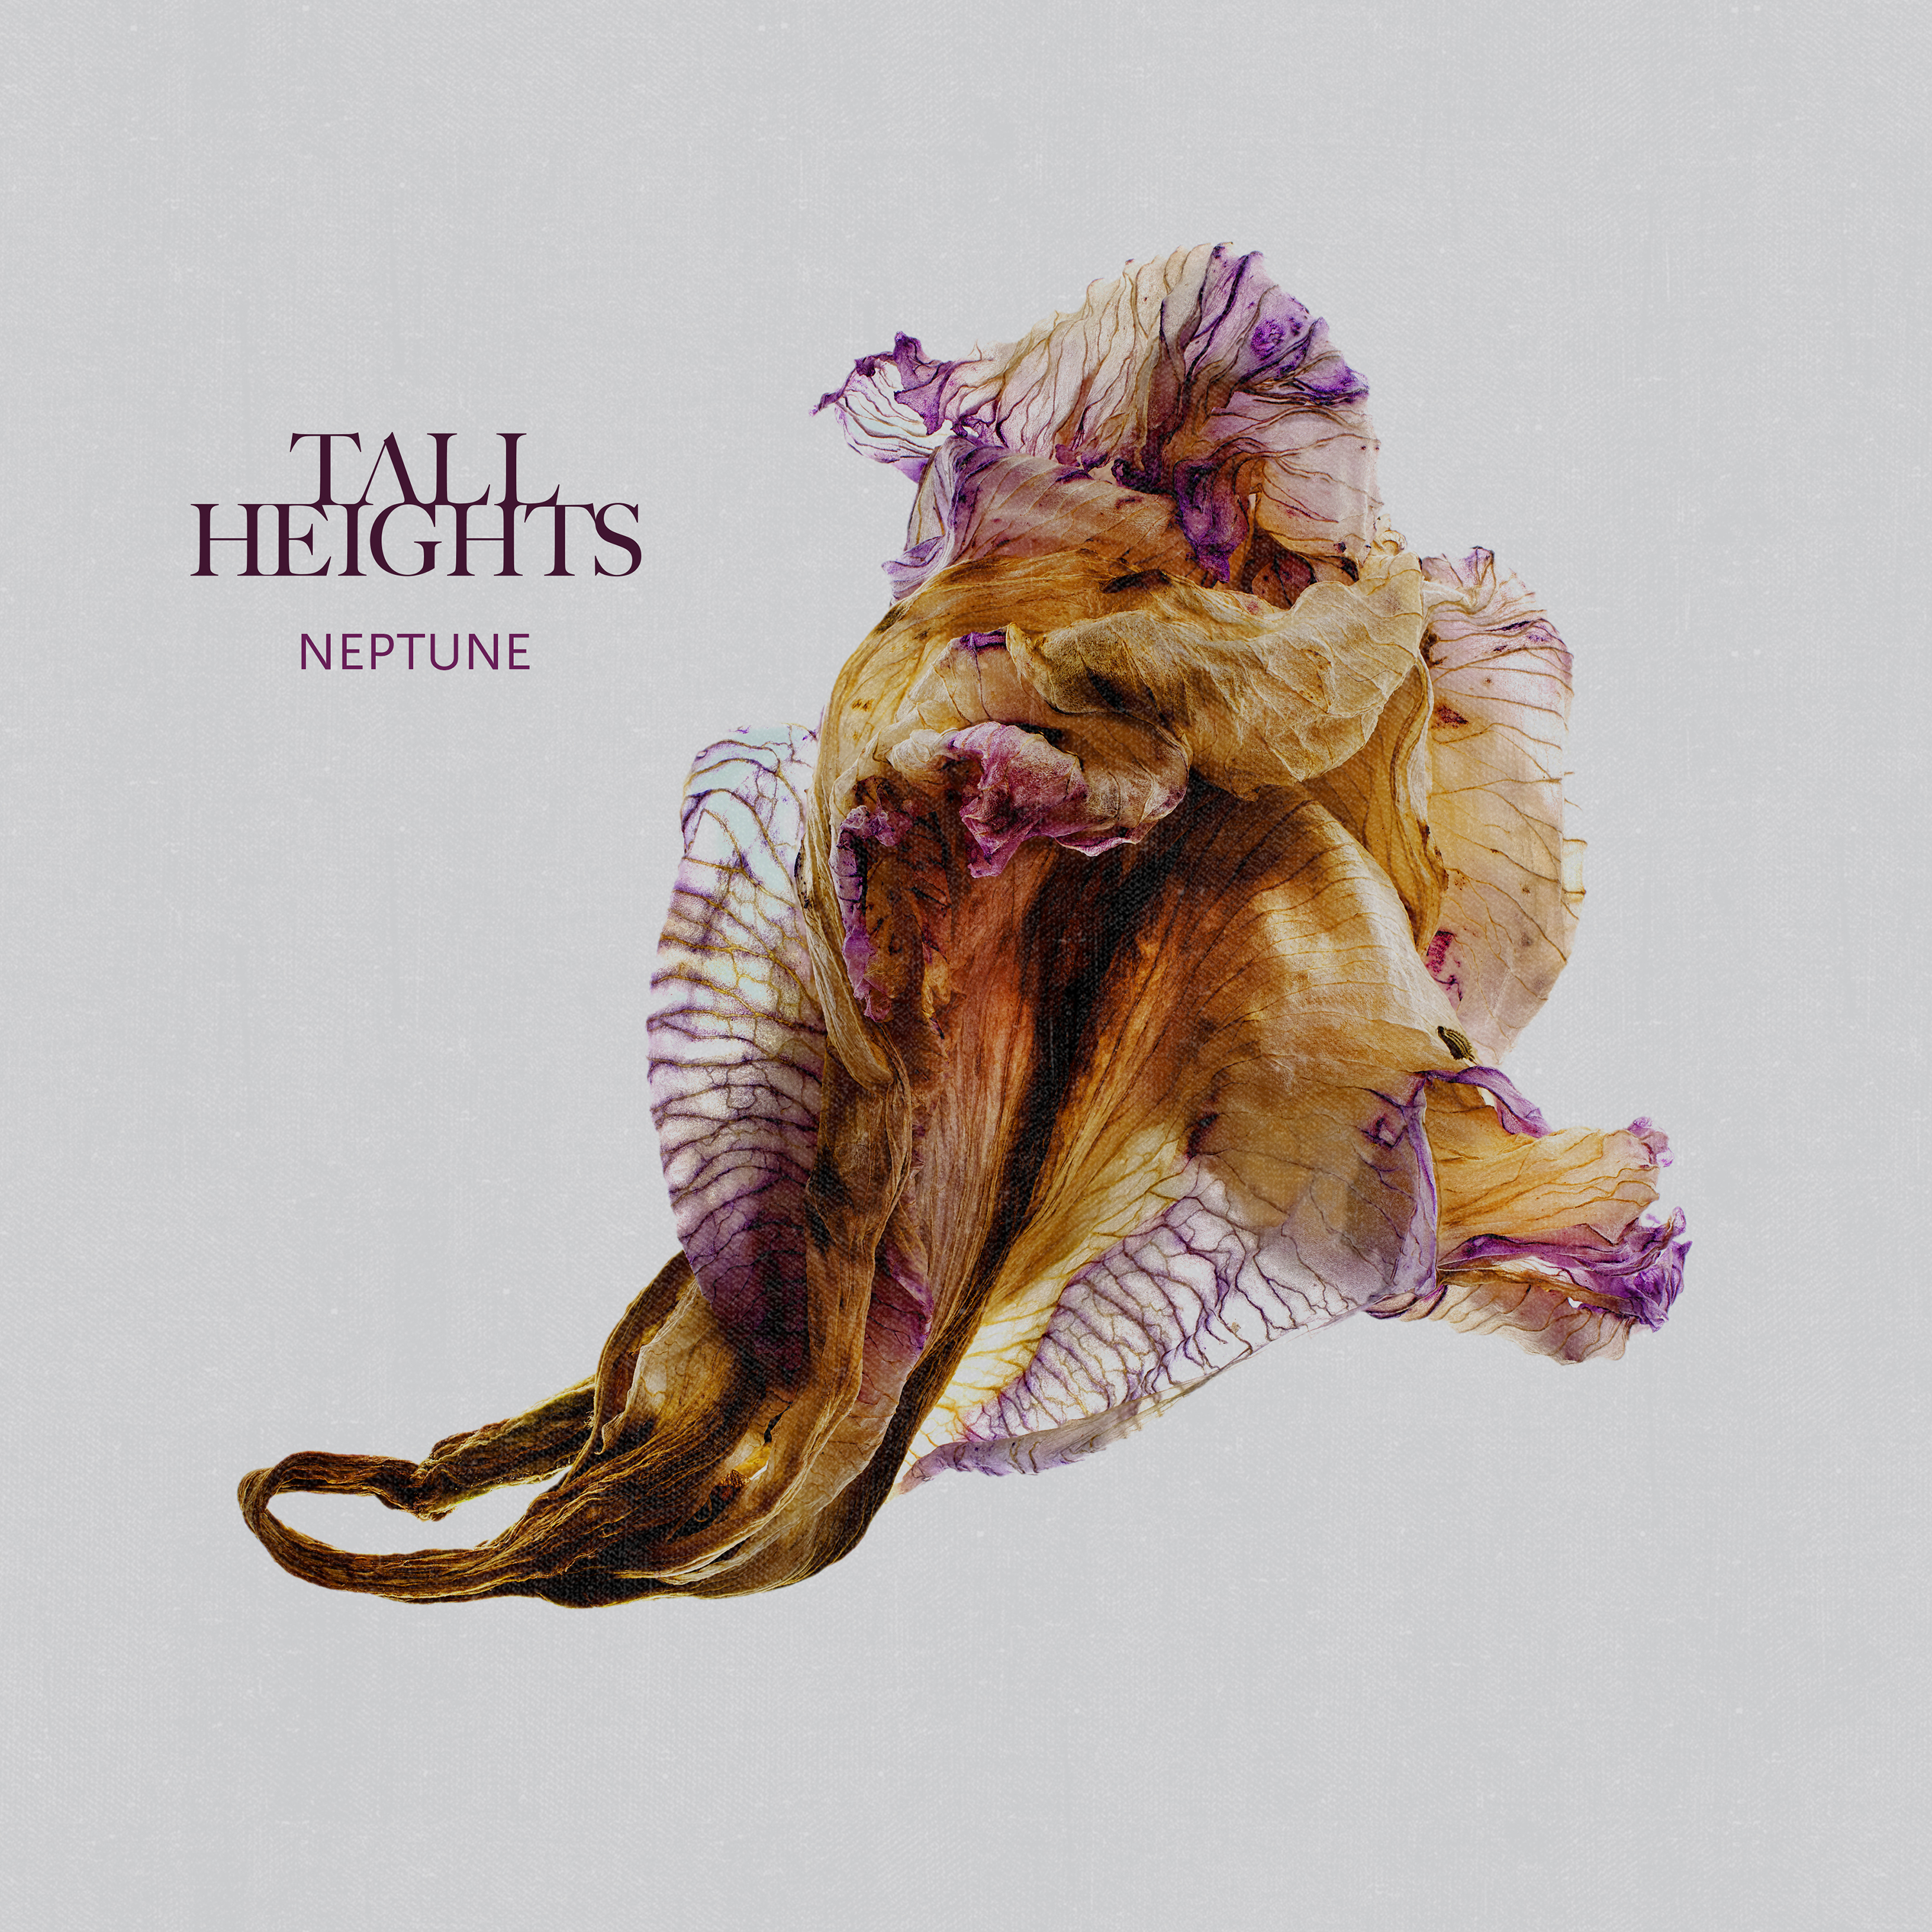 """HEAR TALL HEIGHTS NEW SINGLE """"IRON IN THE FIRE"""" AND ENTER TO MEET THE BAND!"""